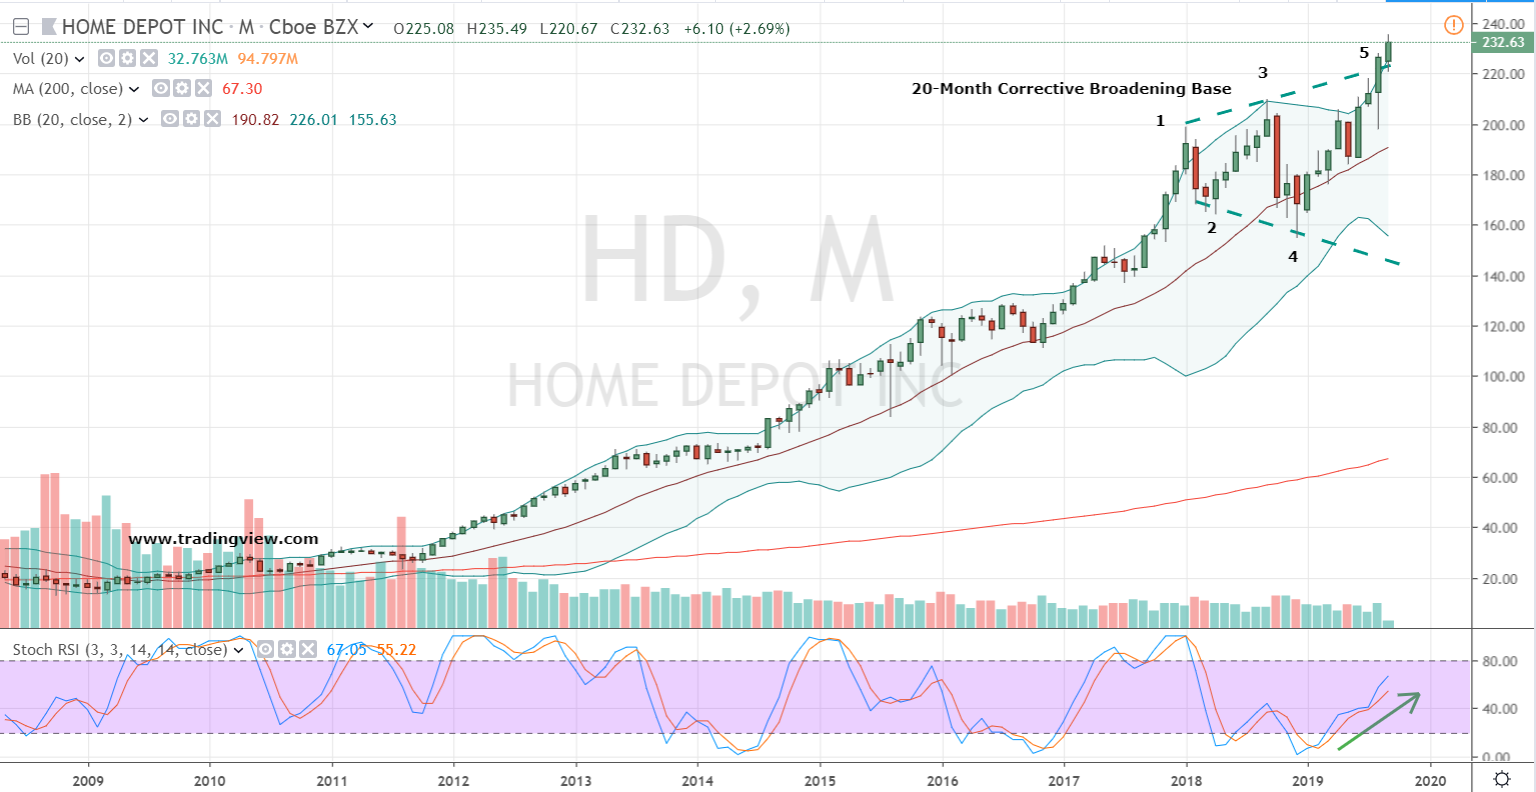 Home Depot Stock Price Monthly Chart